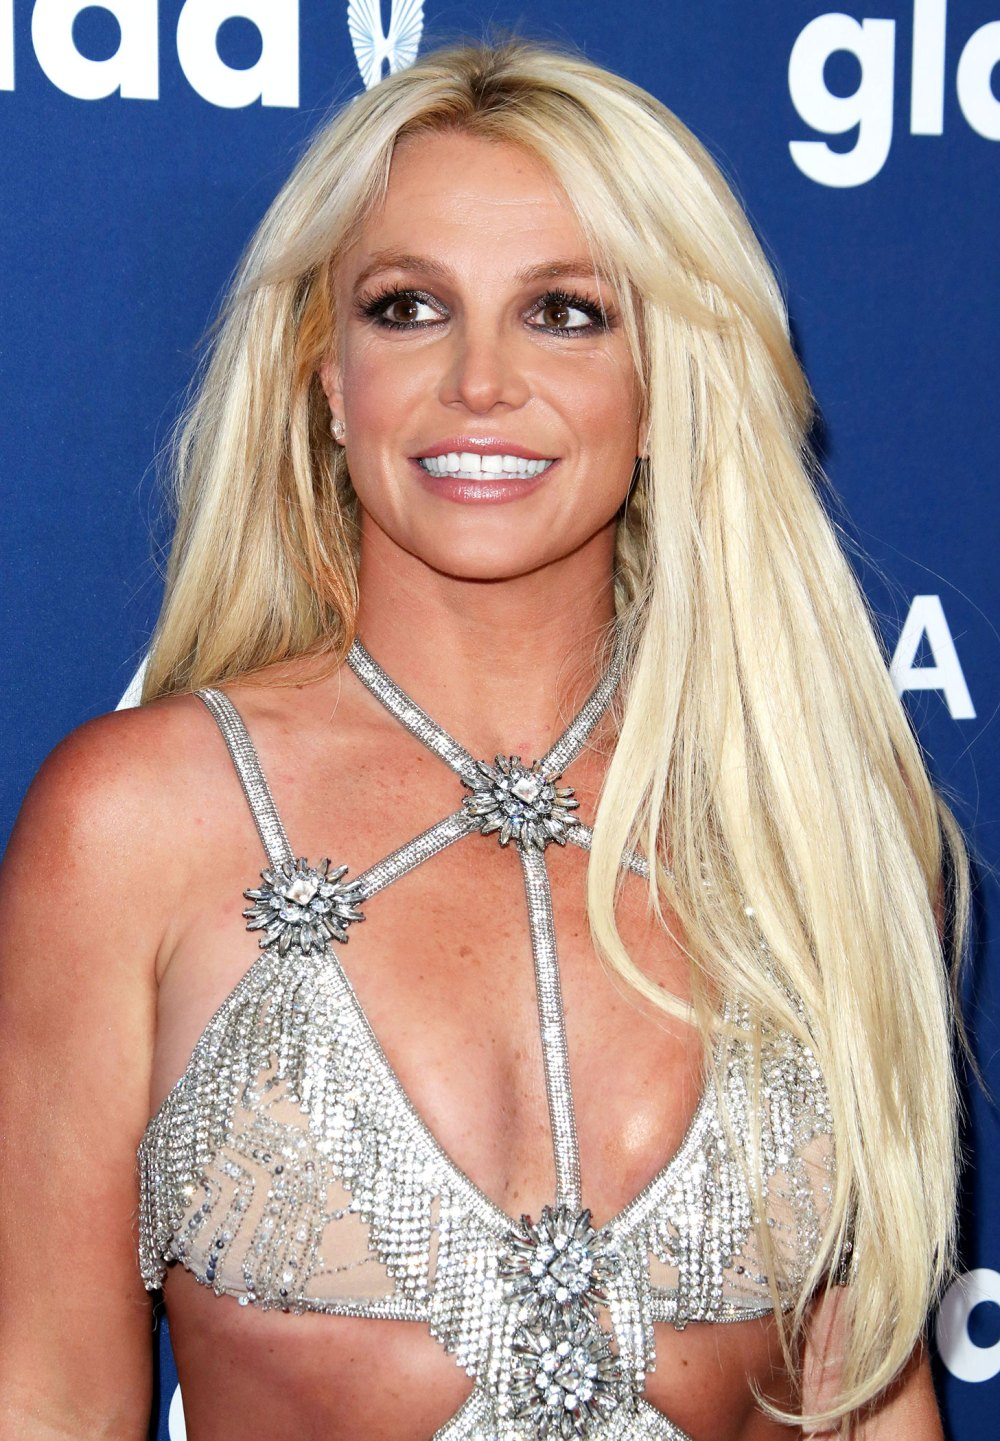 Britney Spears: Nude at the Beach? - The Hollywood Gossip